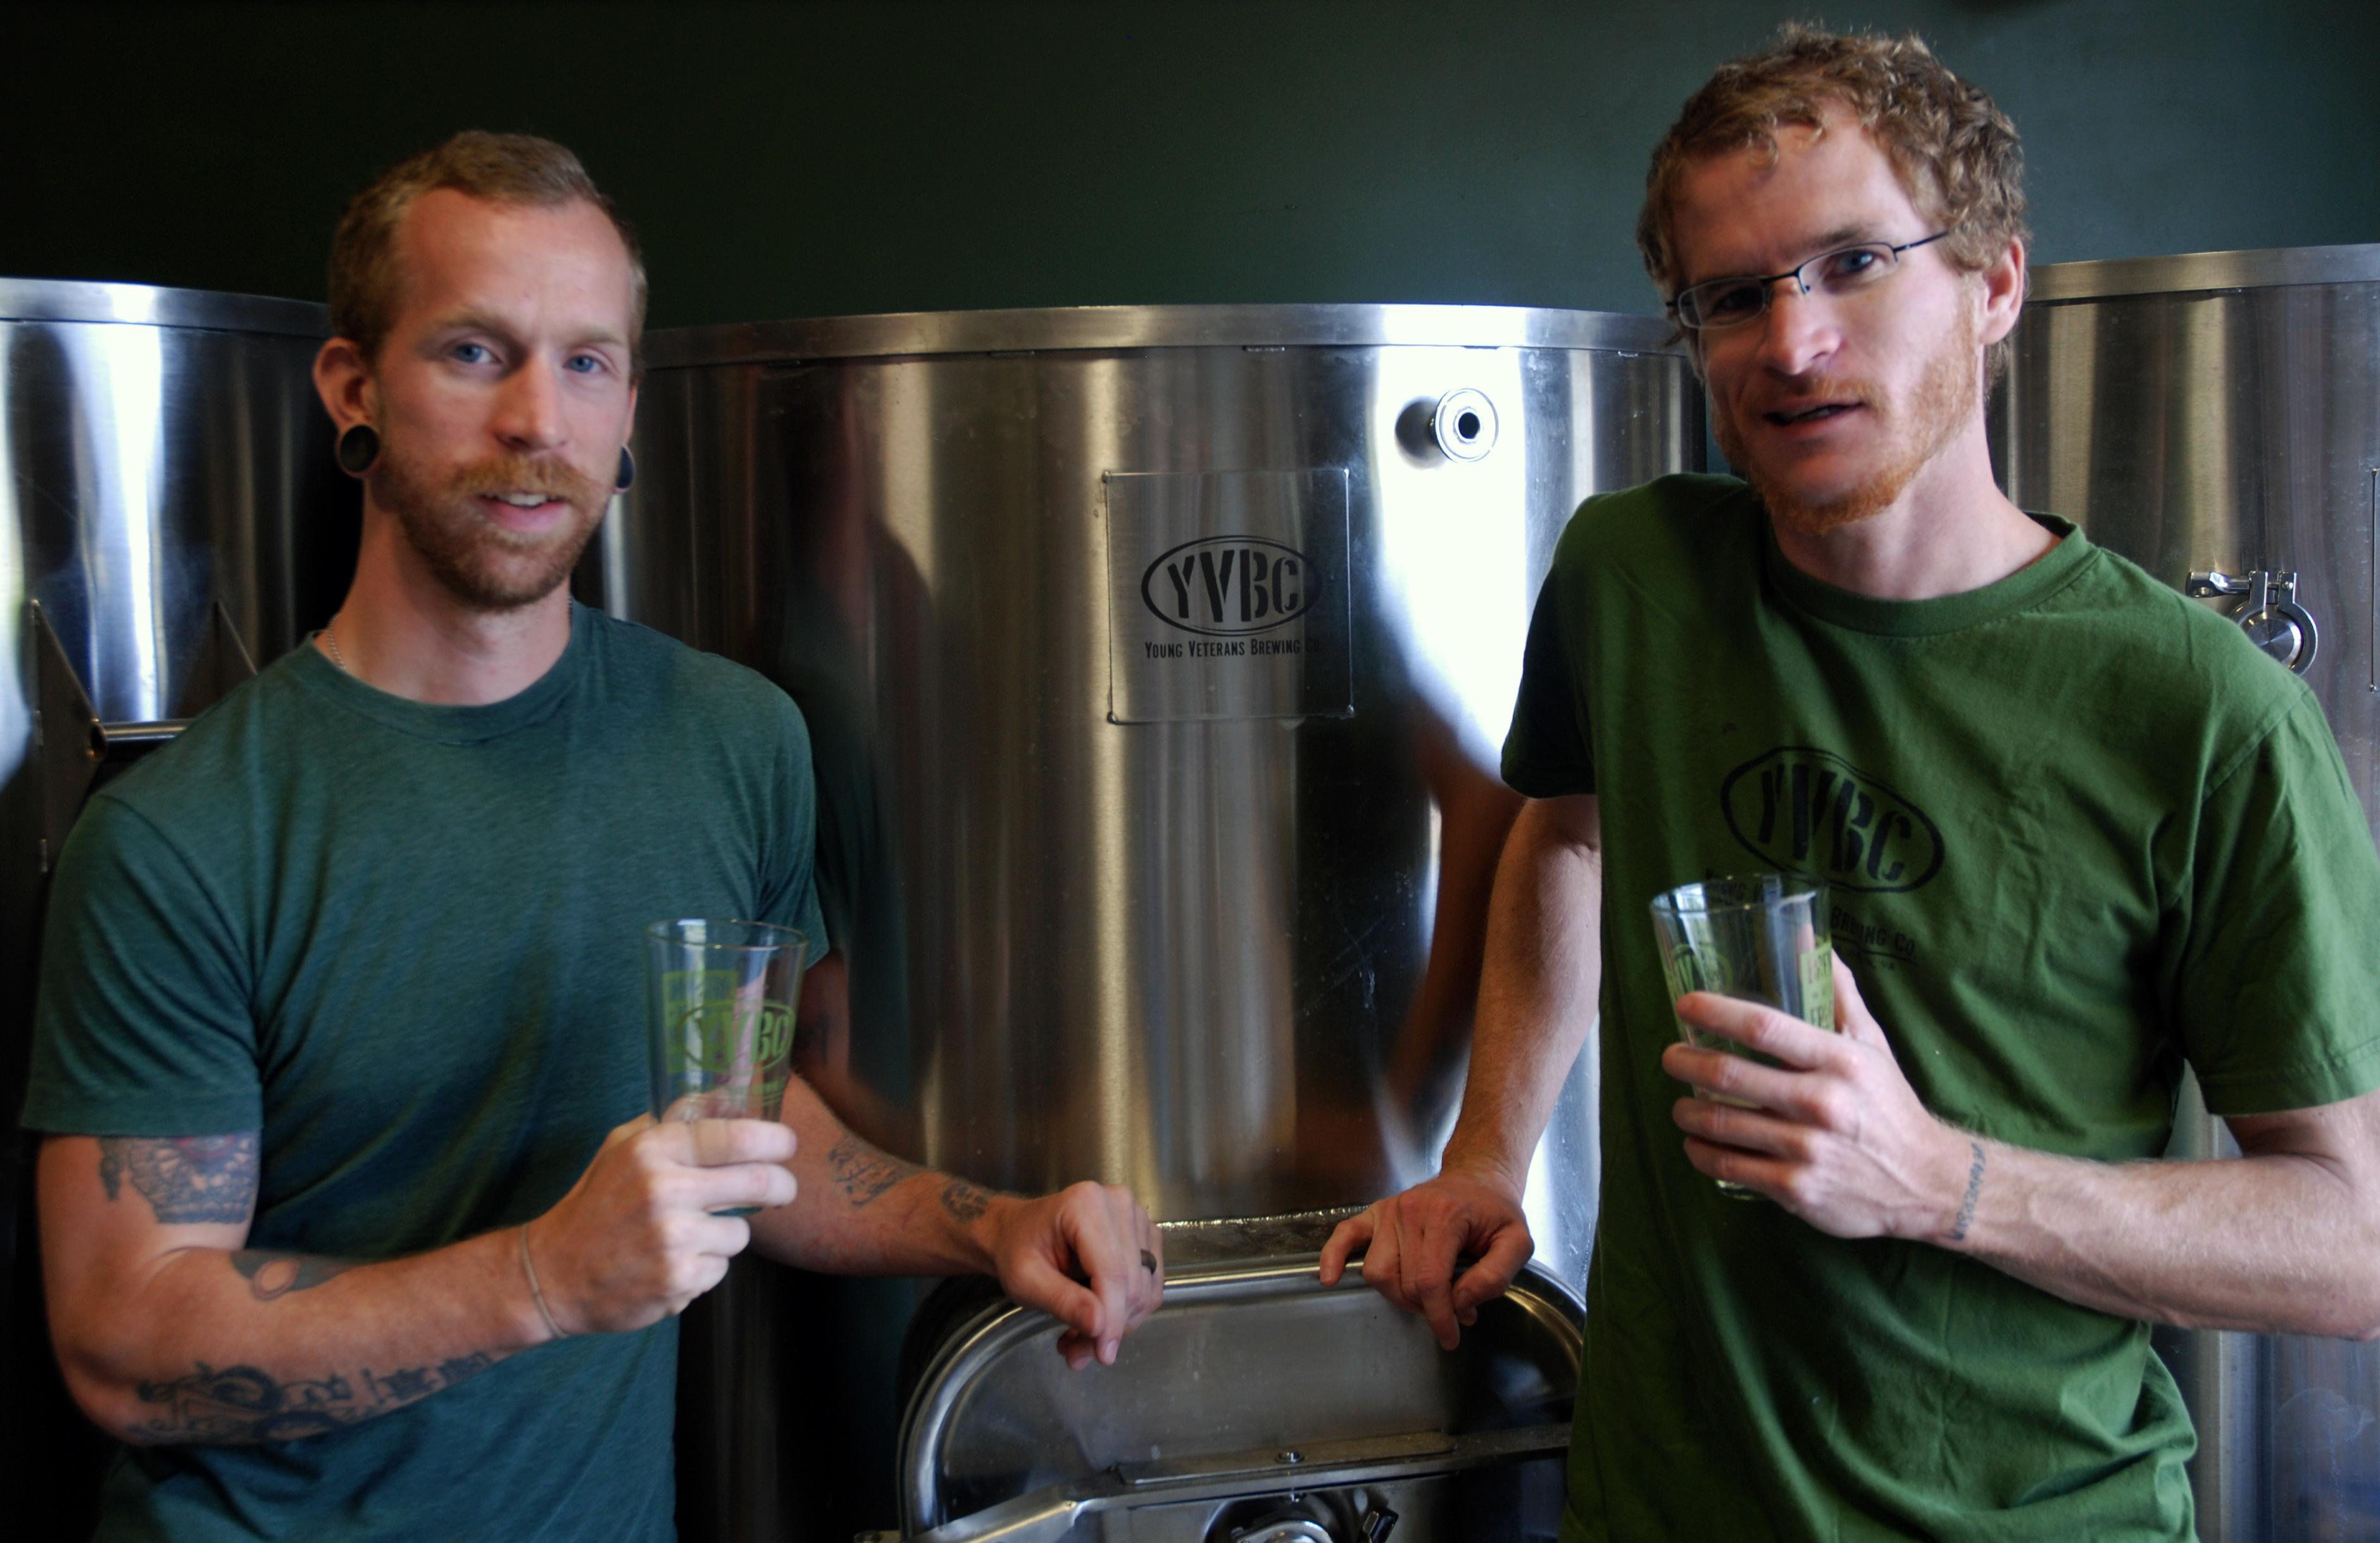 """<p> In a Wednesday, Aug. 14, 2013 photo, Young Veterans Brewing Co. President Thomas Wilder, left, and head brewer Neil McCanon pose for a photo with glasses of """"Jet Noise IPA,"""" at the Virginia Beach, Va., brewery. The two Iraq War veterans are set to open the brewery in military-heavy Hampton Roads in September. Virginia, which is celebrating its second craft beer month in August, has seen the industry grow from about 40 craft breweries last year to more than 60 in 2013, with countless more in the works. (AP Photo/Michael Felberbaum)</p>"""